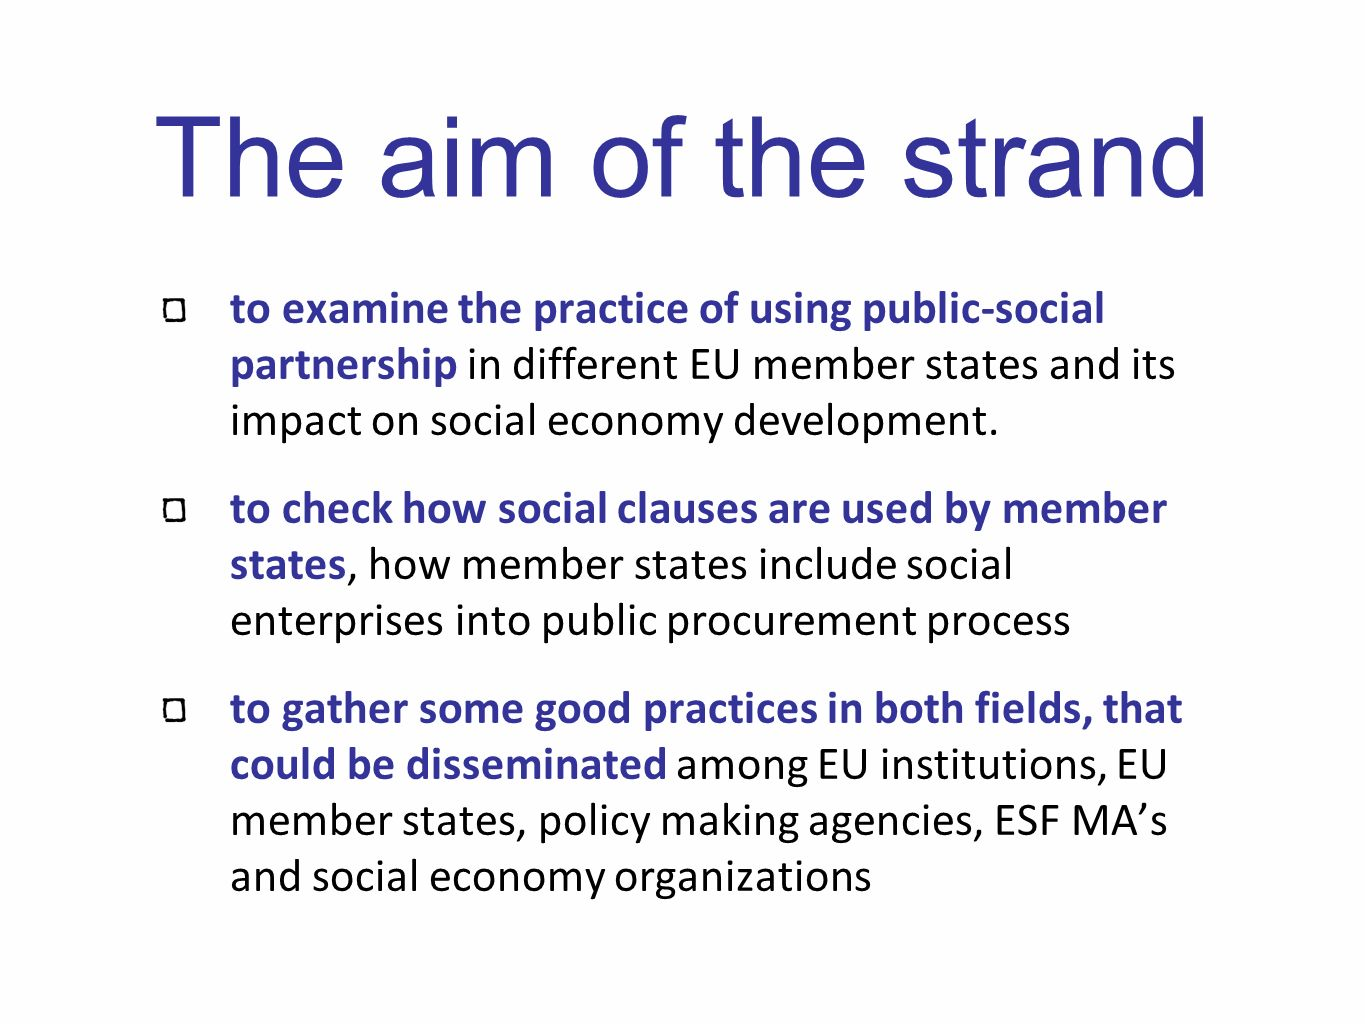 The aim of the strand to examine the practice of using public-social partnership in different EU member states and its impact on social economy development.